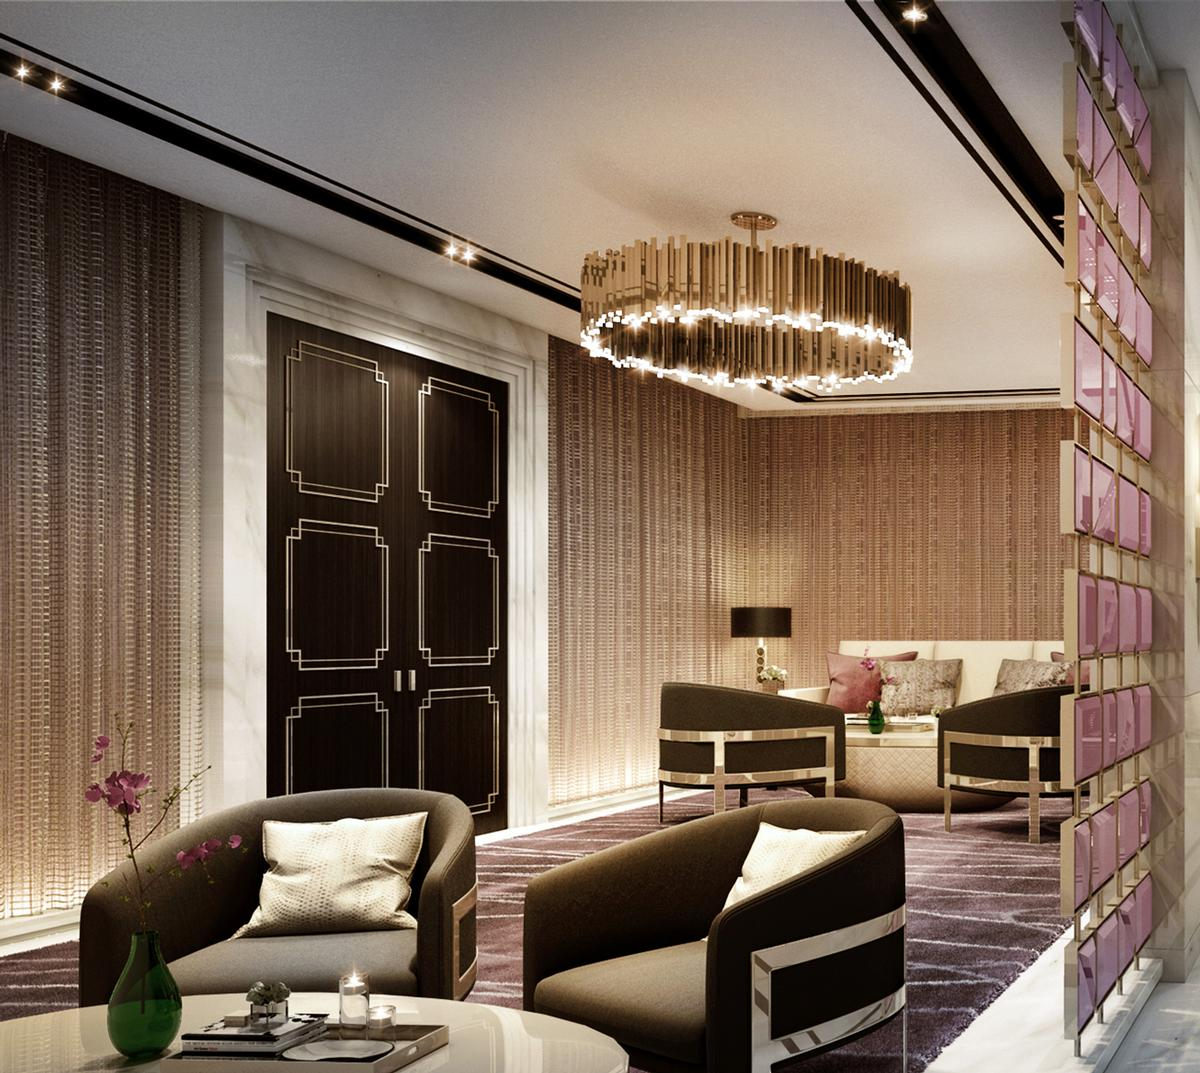 WATG designing Zen spa for Bellagio Shanghai Architecture and